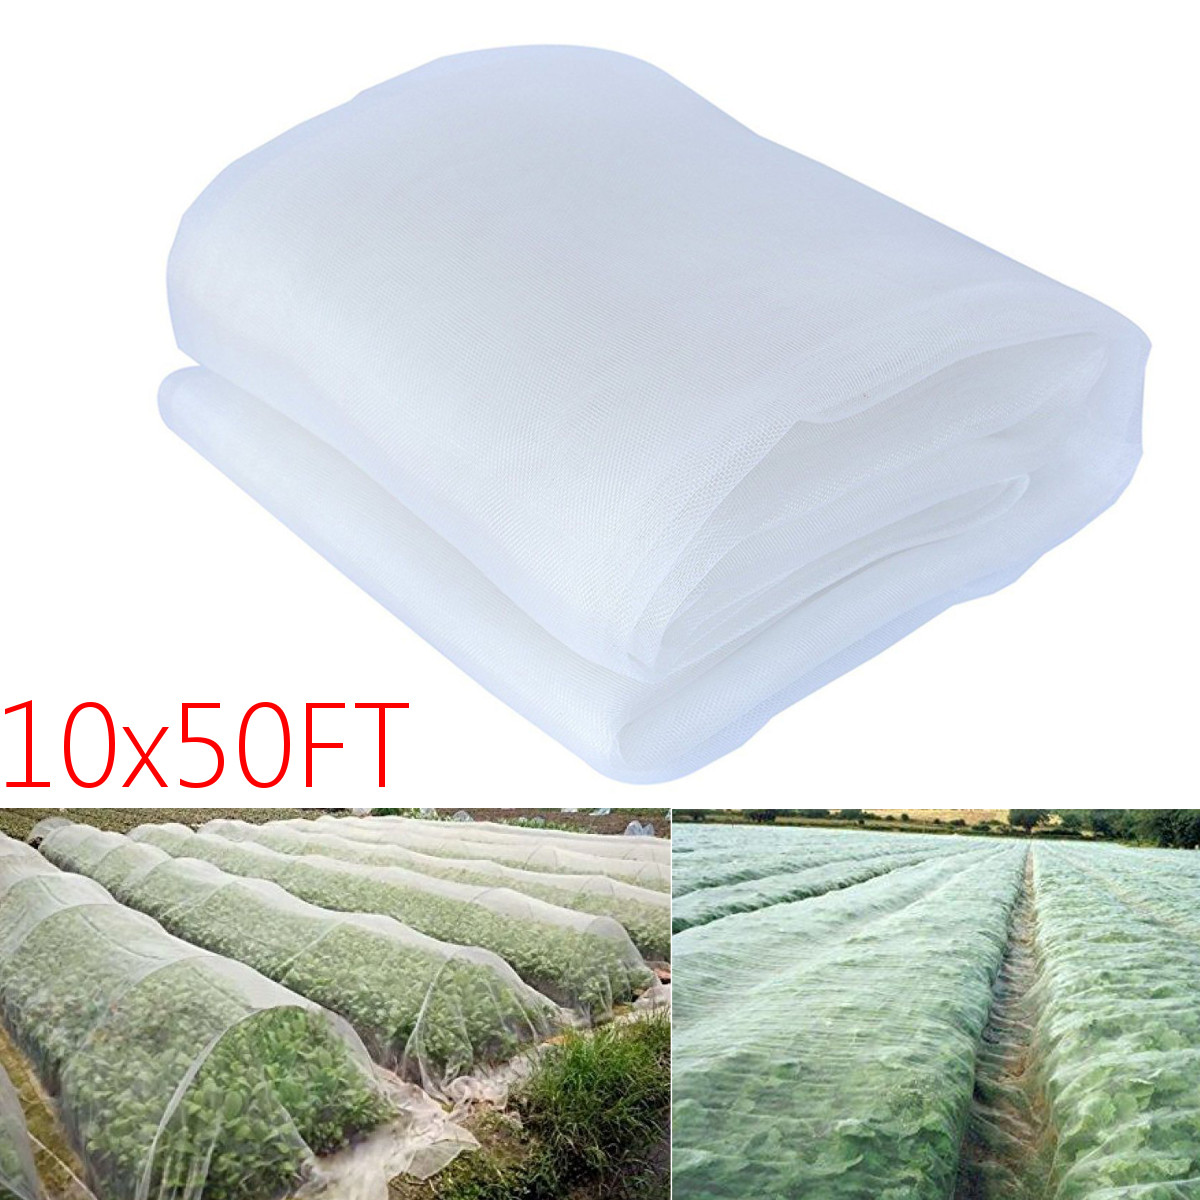 15m Garden Pest Insect Anti-bird Net Plant Vegetable Fruit Protection Cover Nylon 40Mesh Breathable Against Insect Pest15m Garden Pest Insect Anti-bird Net Plant Vegetable Fruit Protection Cover Nylon 40Mesh Breathable Against Insect Pest